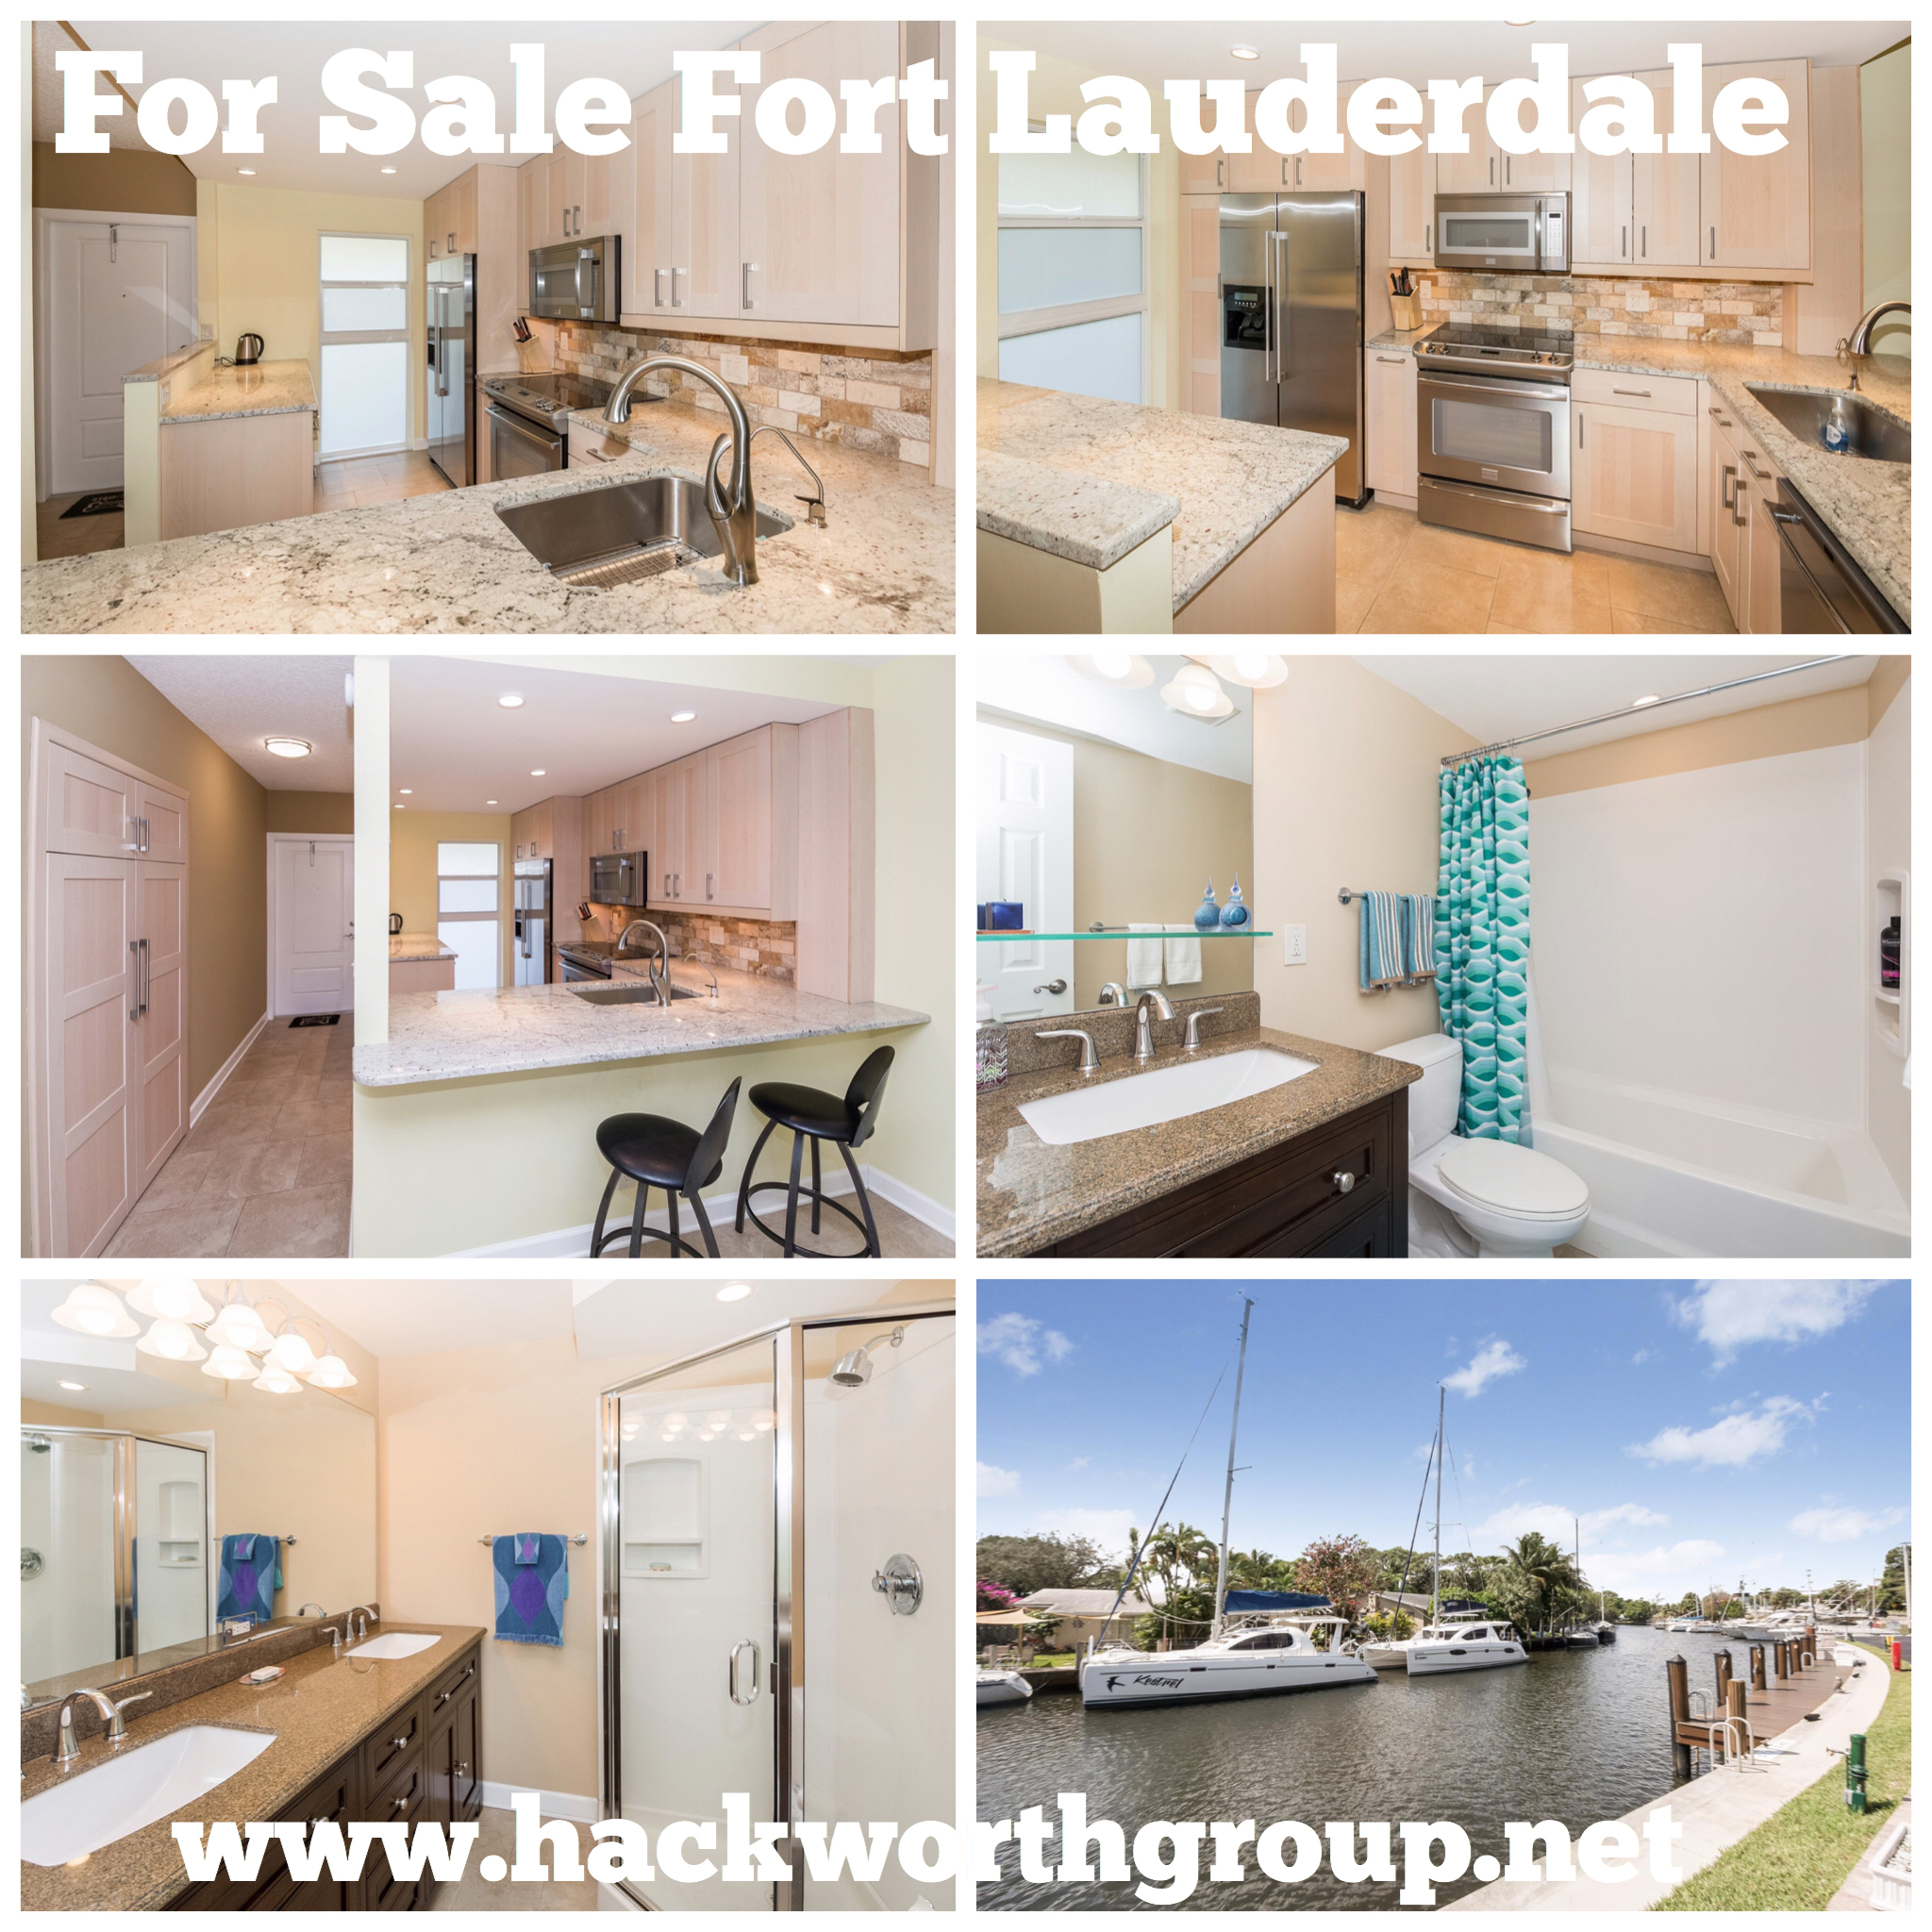 Fort Lauderdale Fort Condo for Sale Broward County Property search